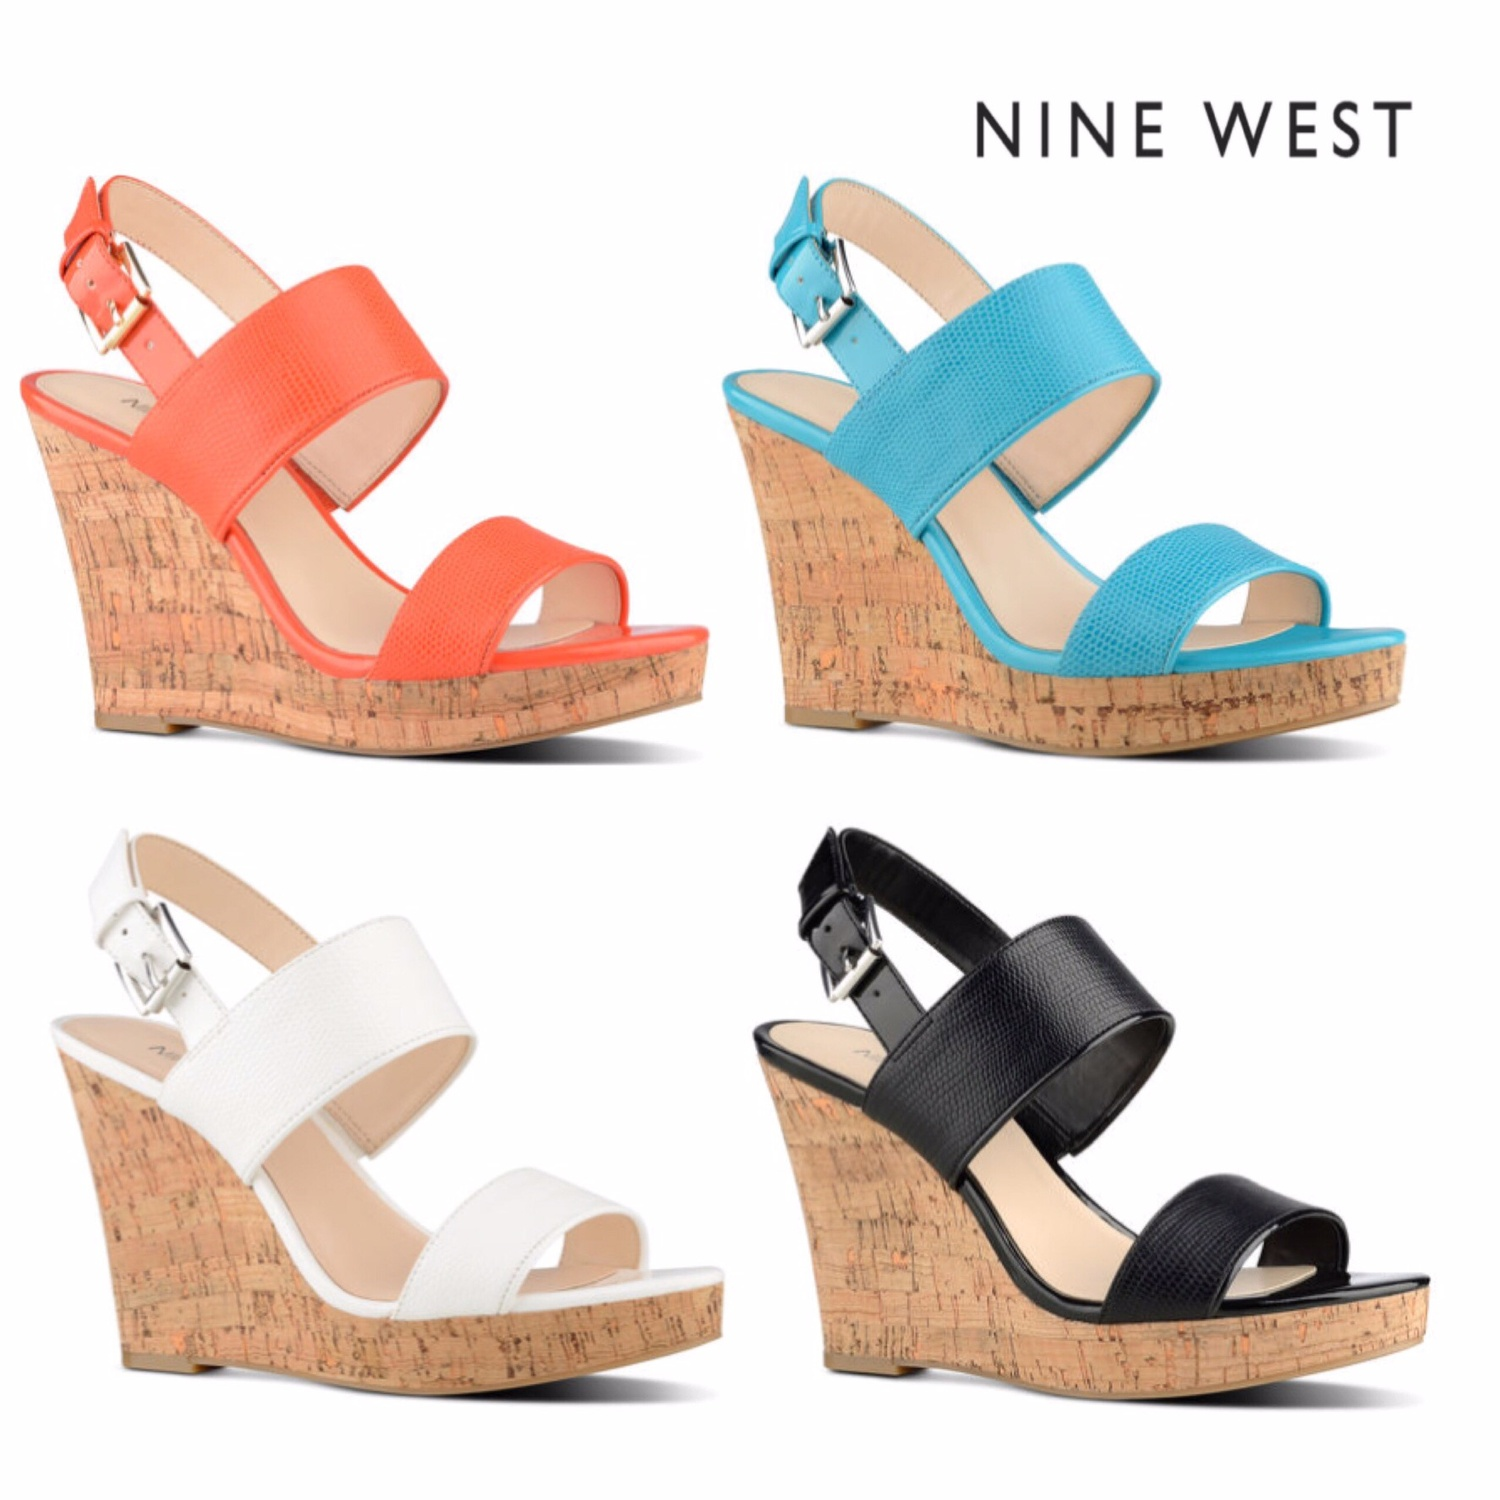 8 items· Find 12 listings related to Nine West in Palo Alto on manualaustinnk4.gq See reviews, photos, directions, phone numbers and more for Nine West locations in Palo Alto, CA. Start your search by typing in the business name below.